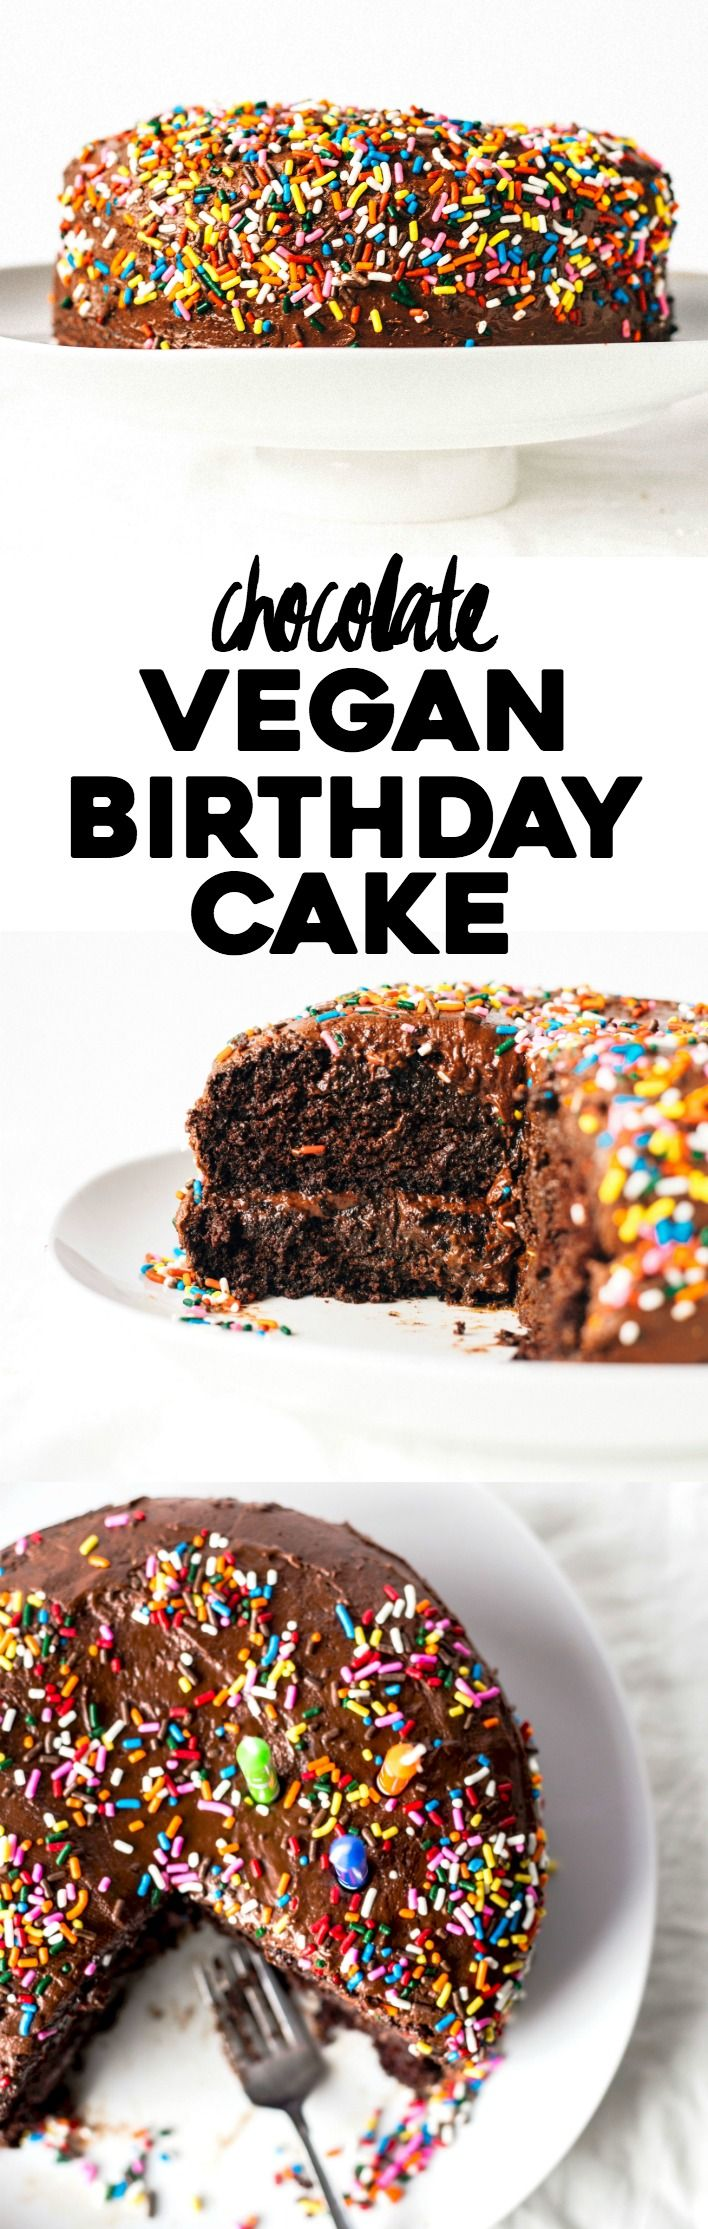 Vegan Birthday Cake | Super rich and chocolate-y, this sprinkle-covered cake will please ALL of your friends, vegan or not! | thealmondeater.com